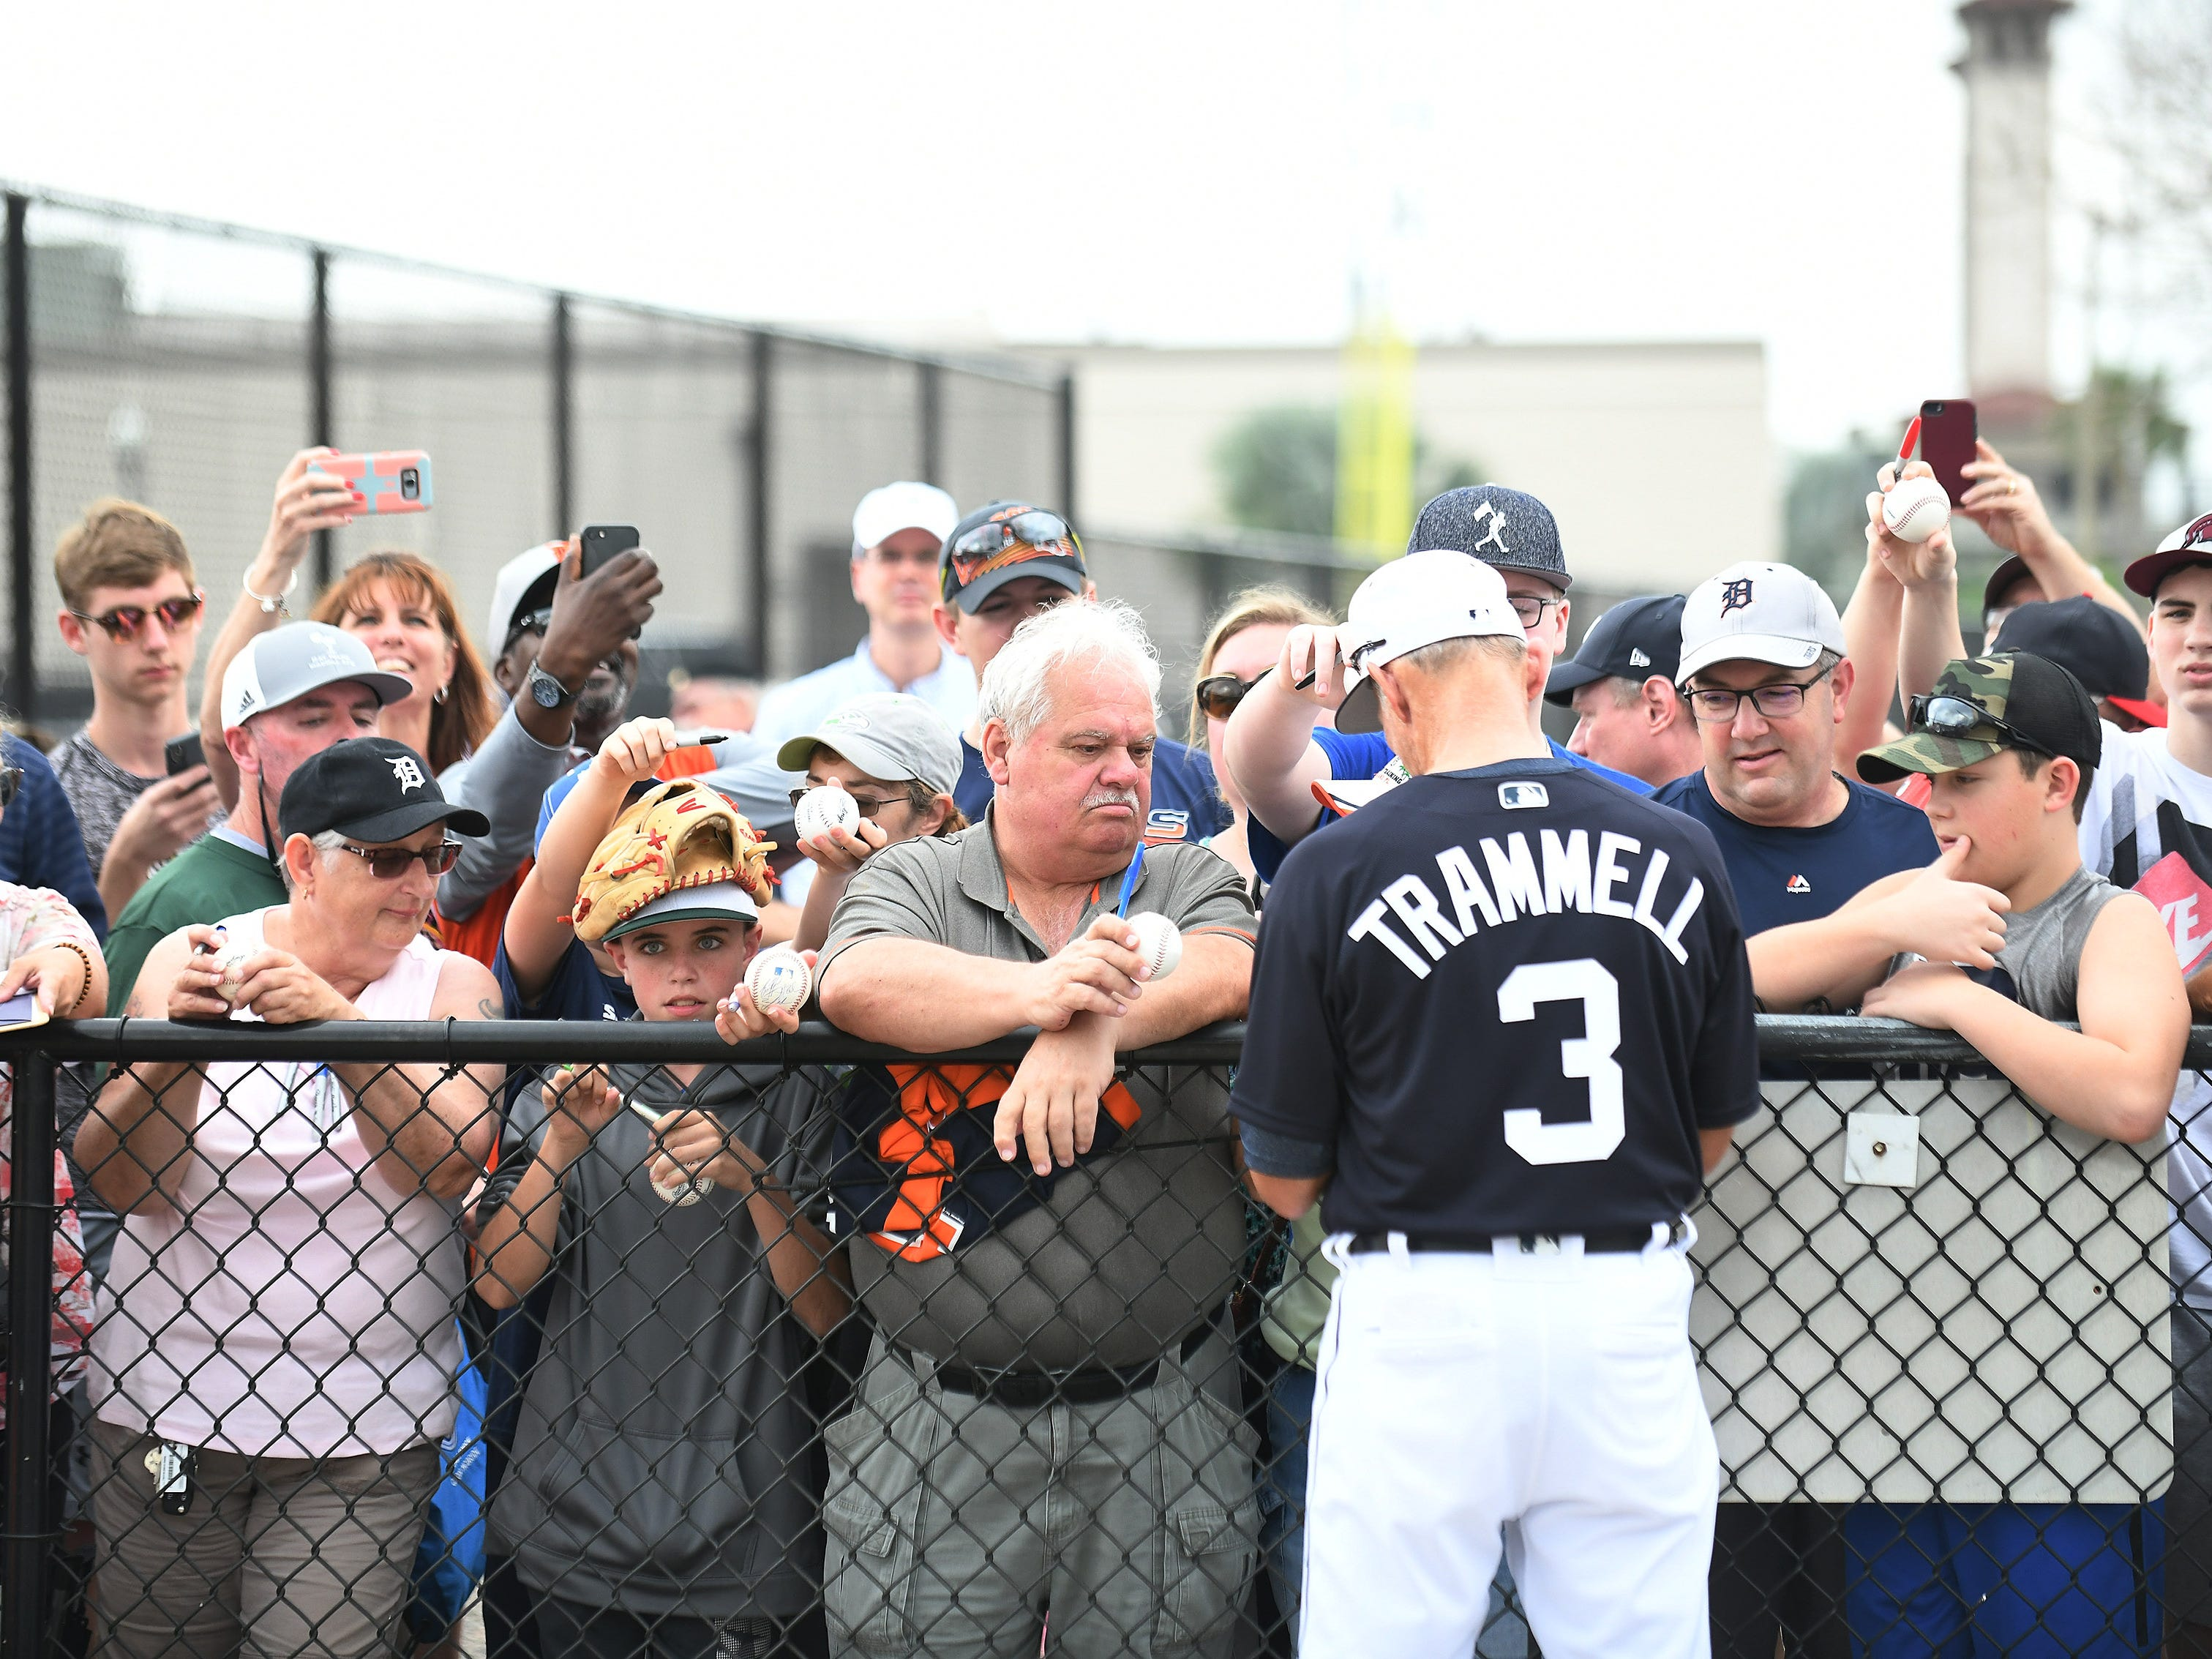 Hall of Famer Alan Trammell signs for fans at the first full squad workout.